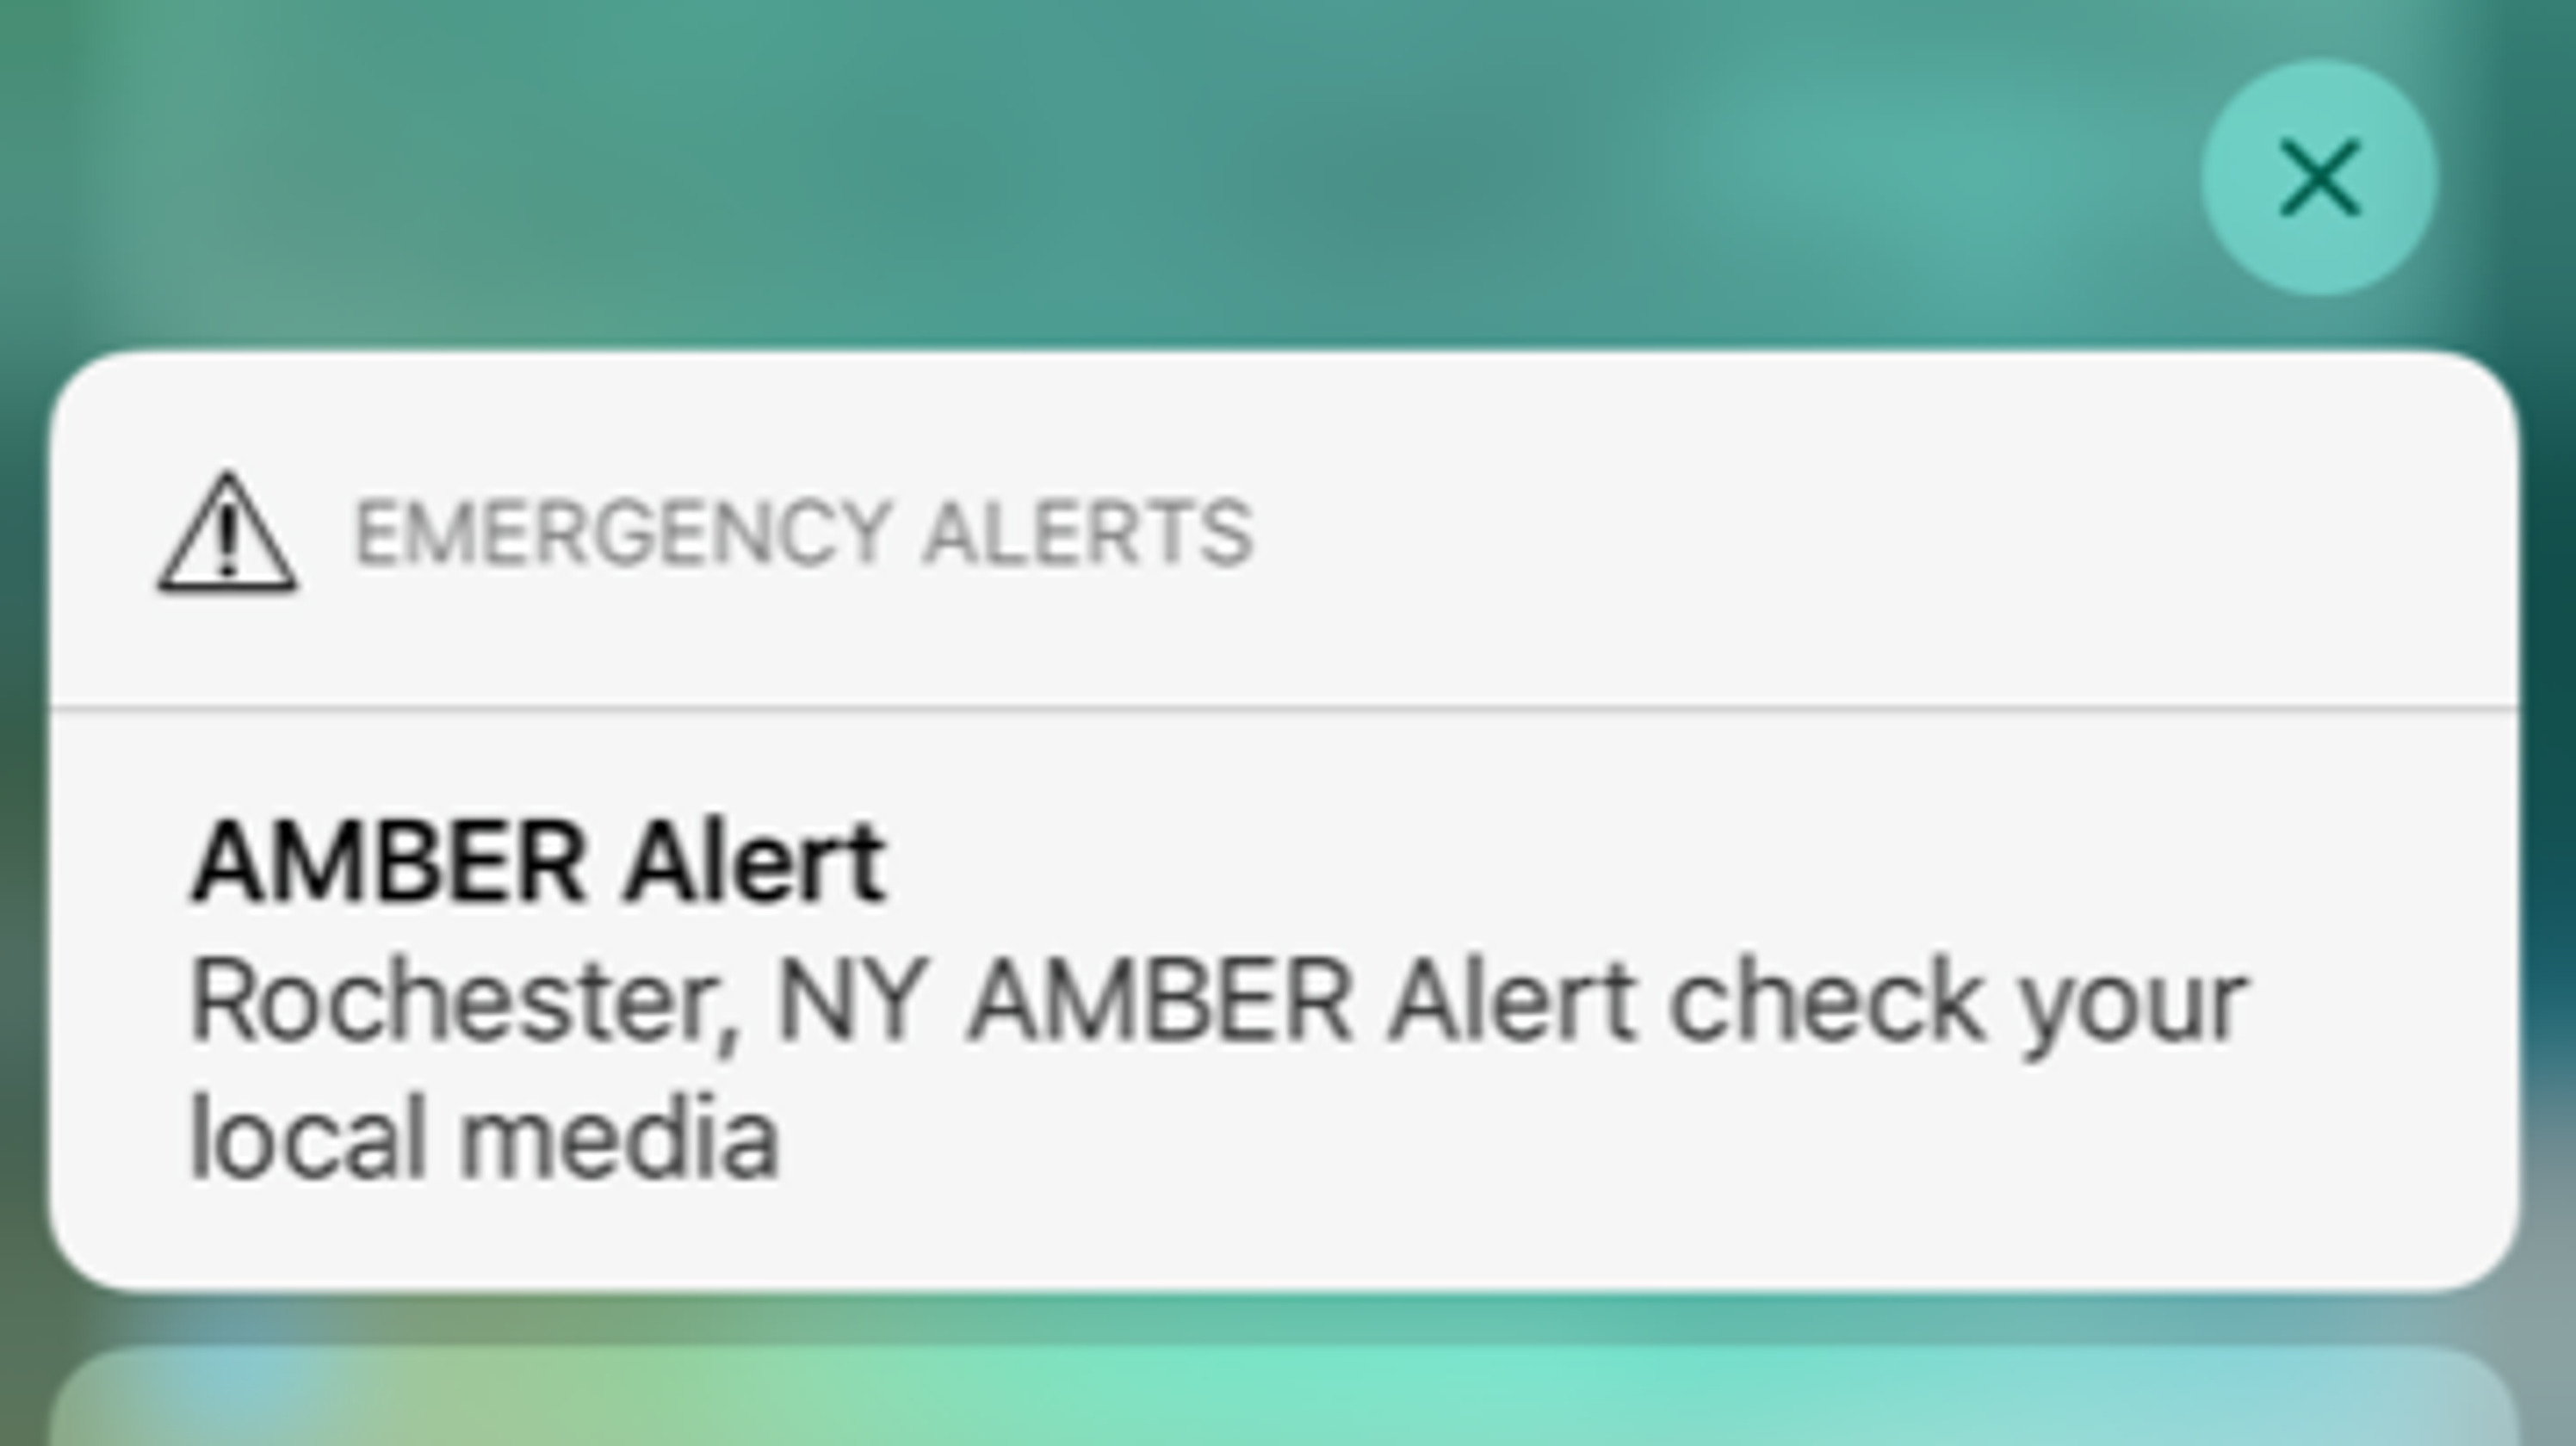 Amber Alert: Why some in Rochester, NY didn't receive the last one